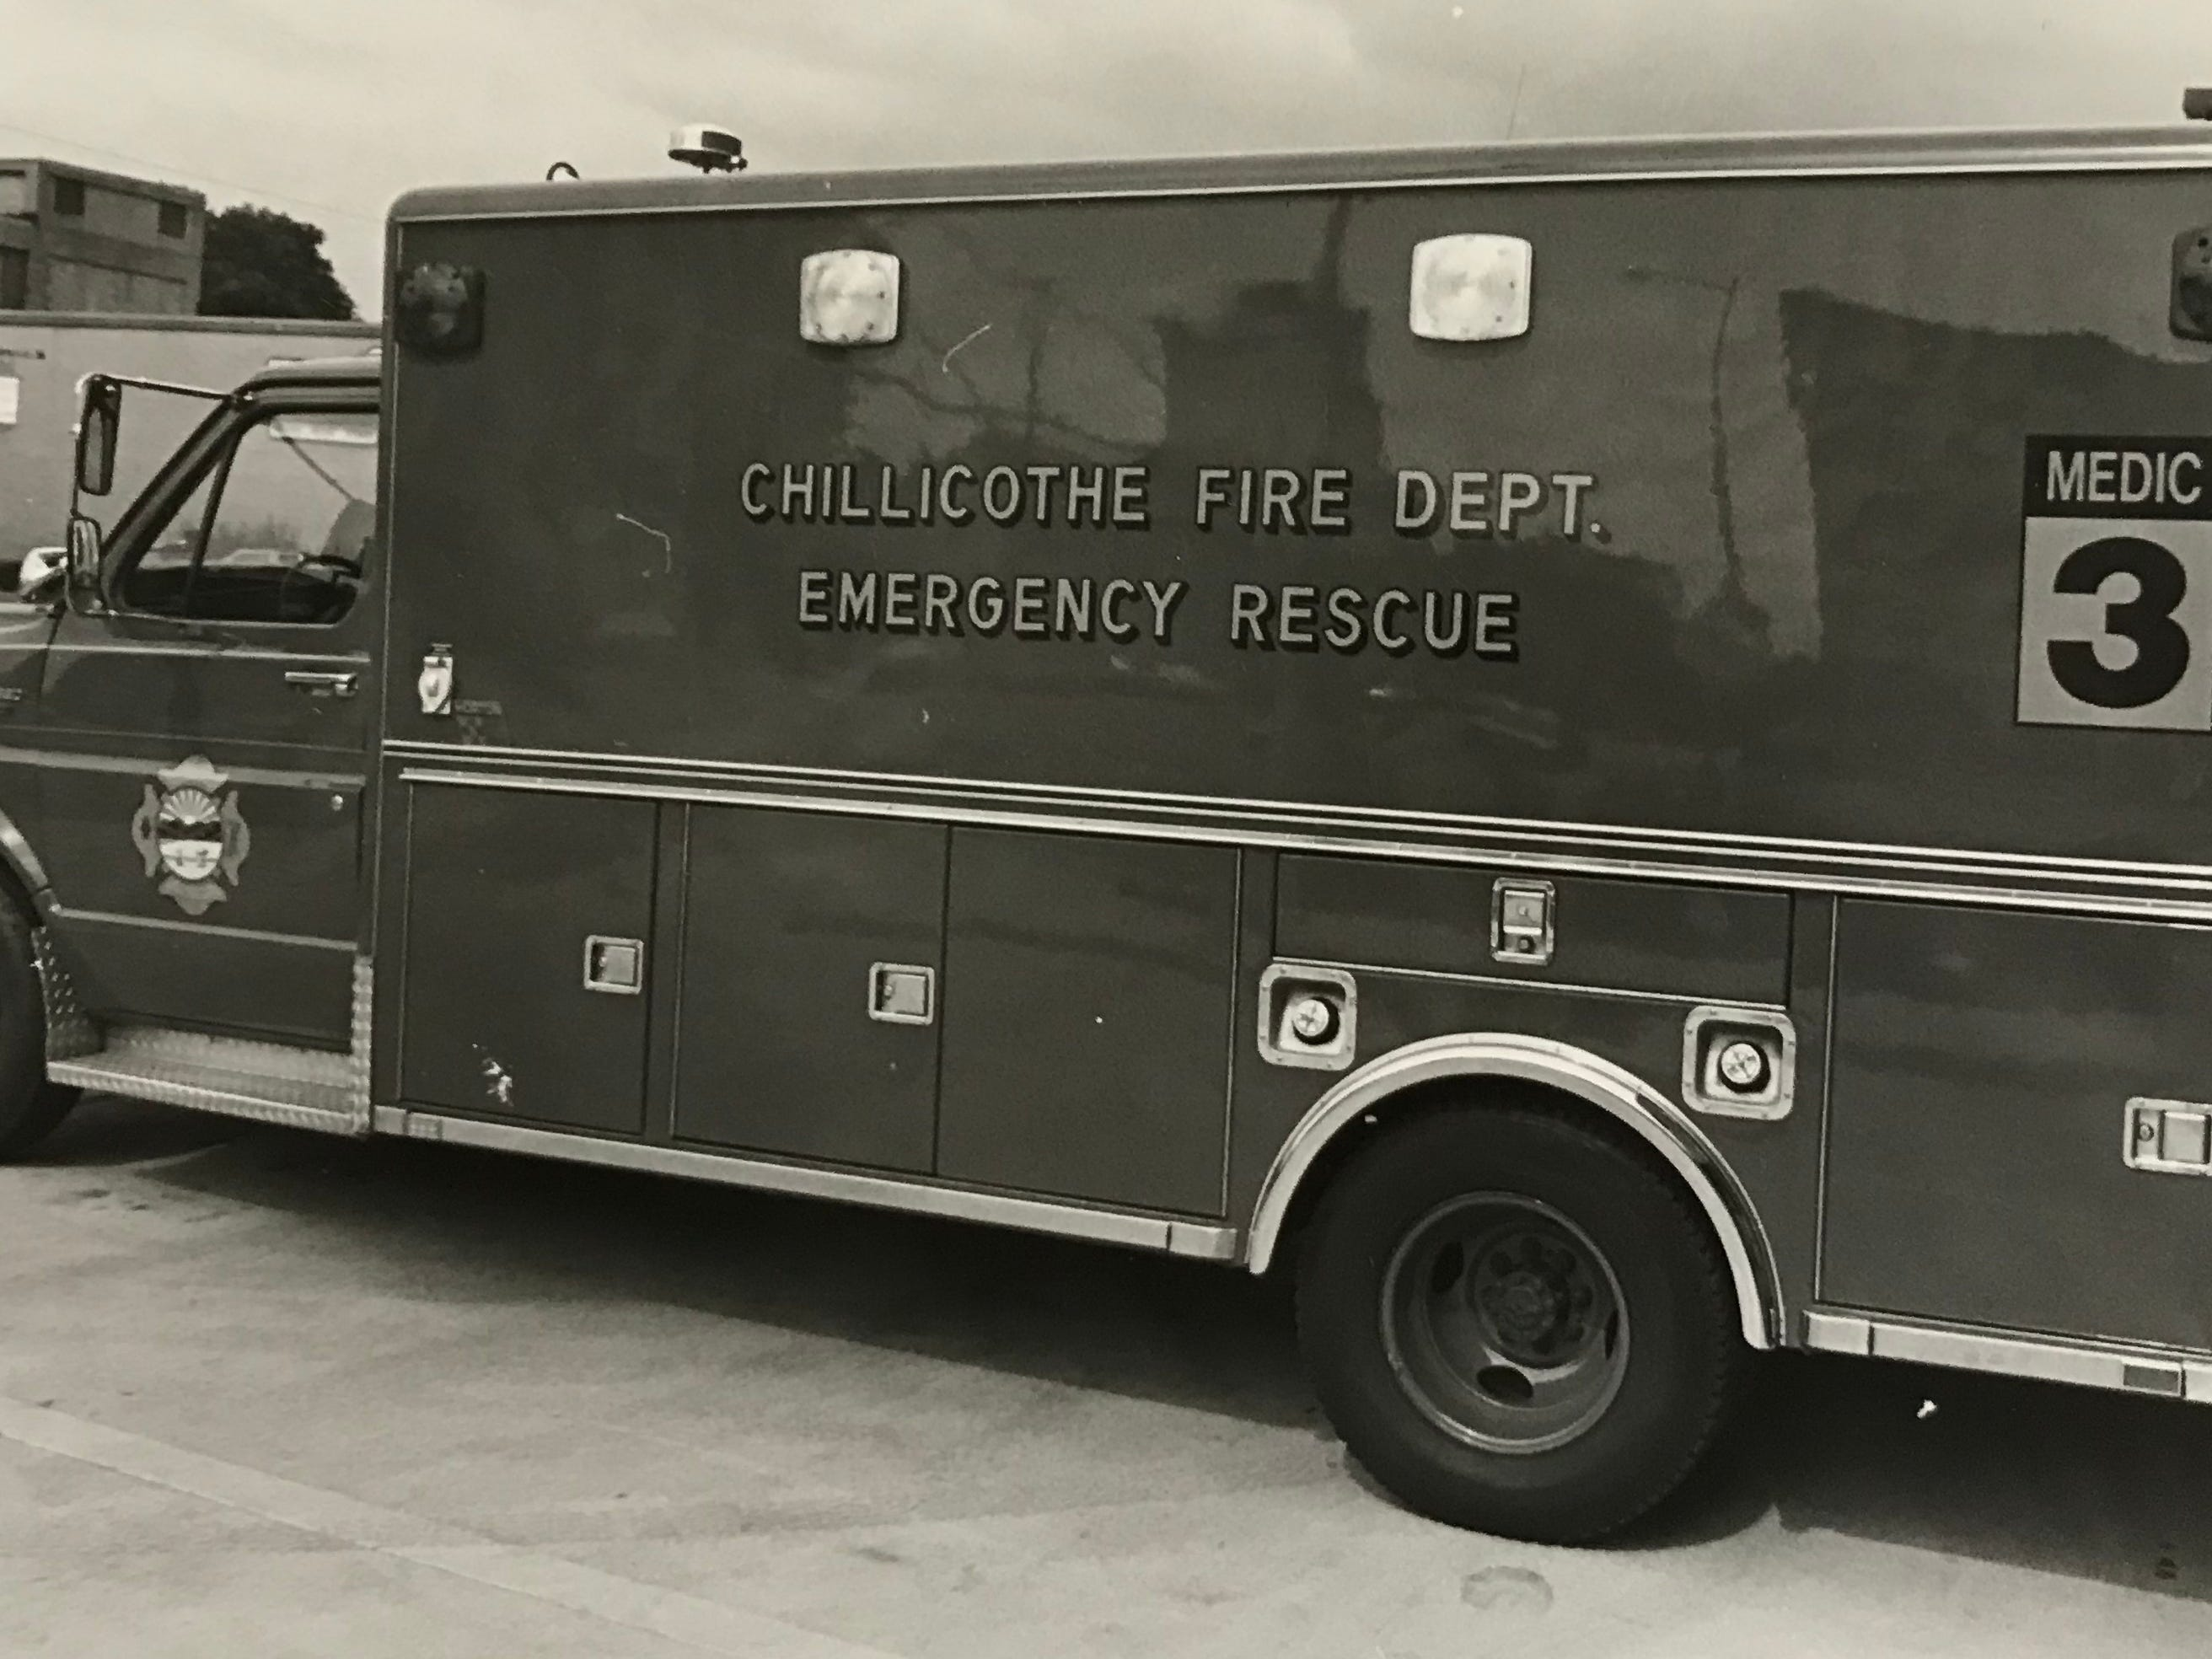 Chillicothe Fire Department ambulance from the 1980s.